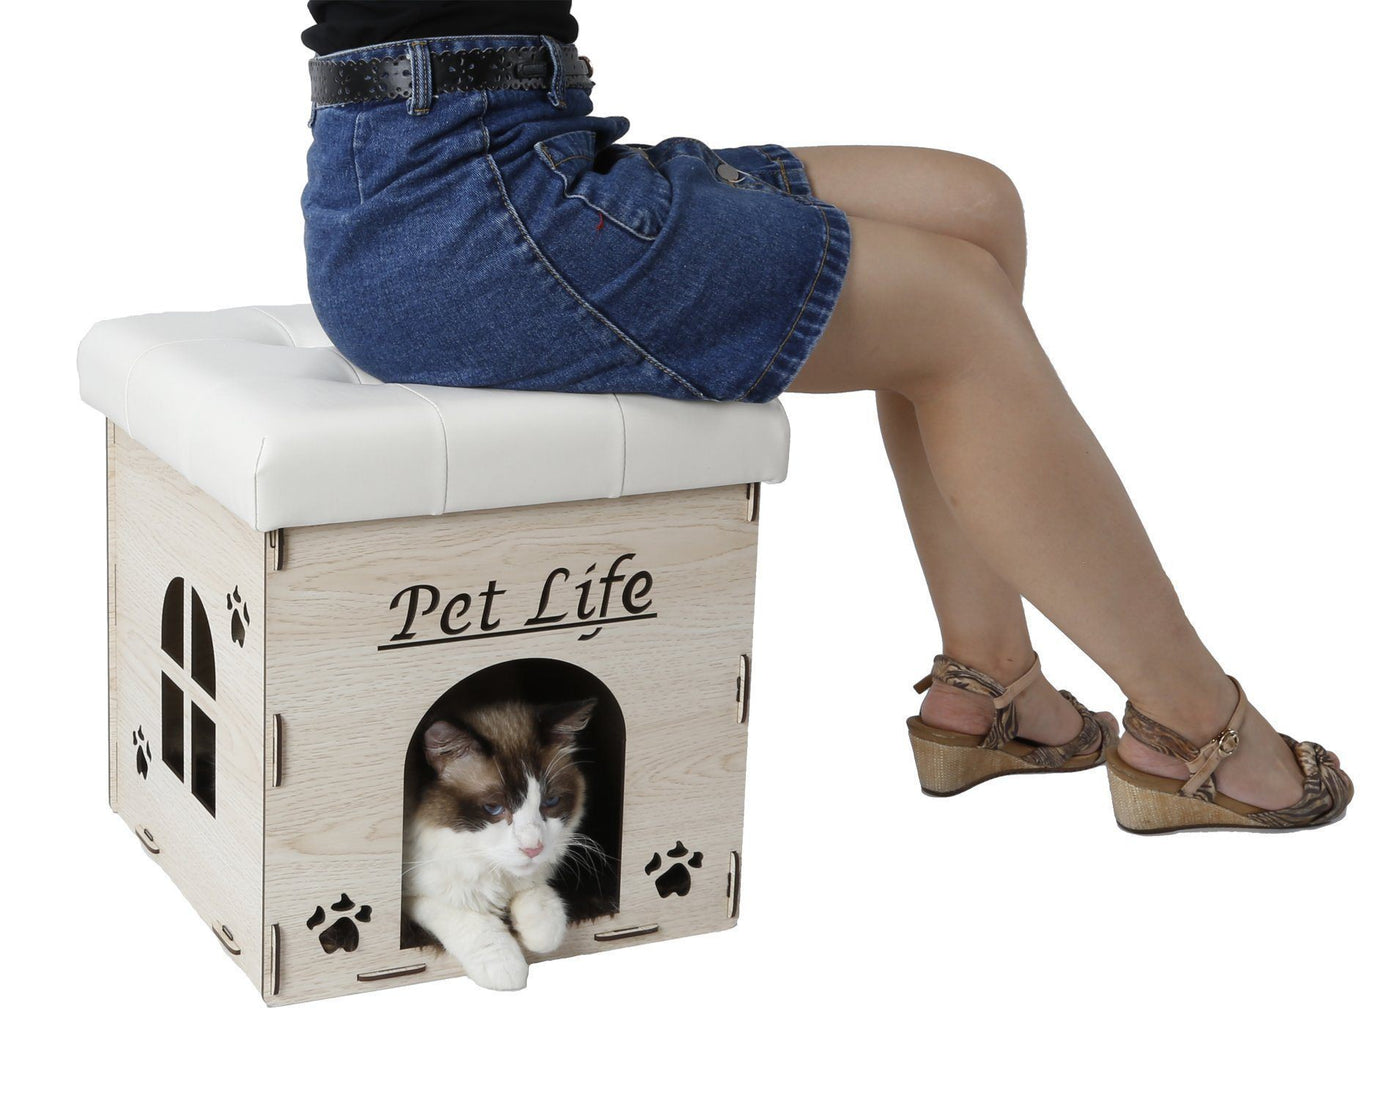 Remarkable Pet Life Kitty Kallapse Collapsible Folding Kitty Cat House Tree Bed Ottoman Bench Furniture Inzonedesignstudio Interior Chair Design Inzonedesignstudiocom